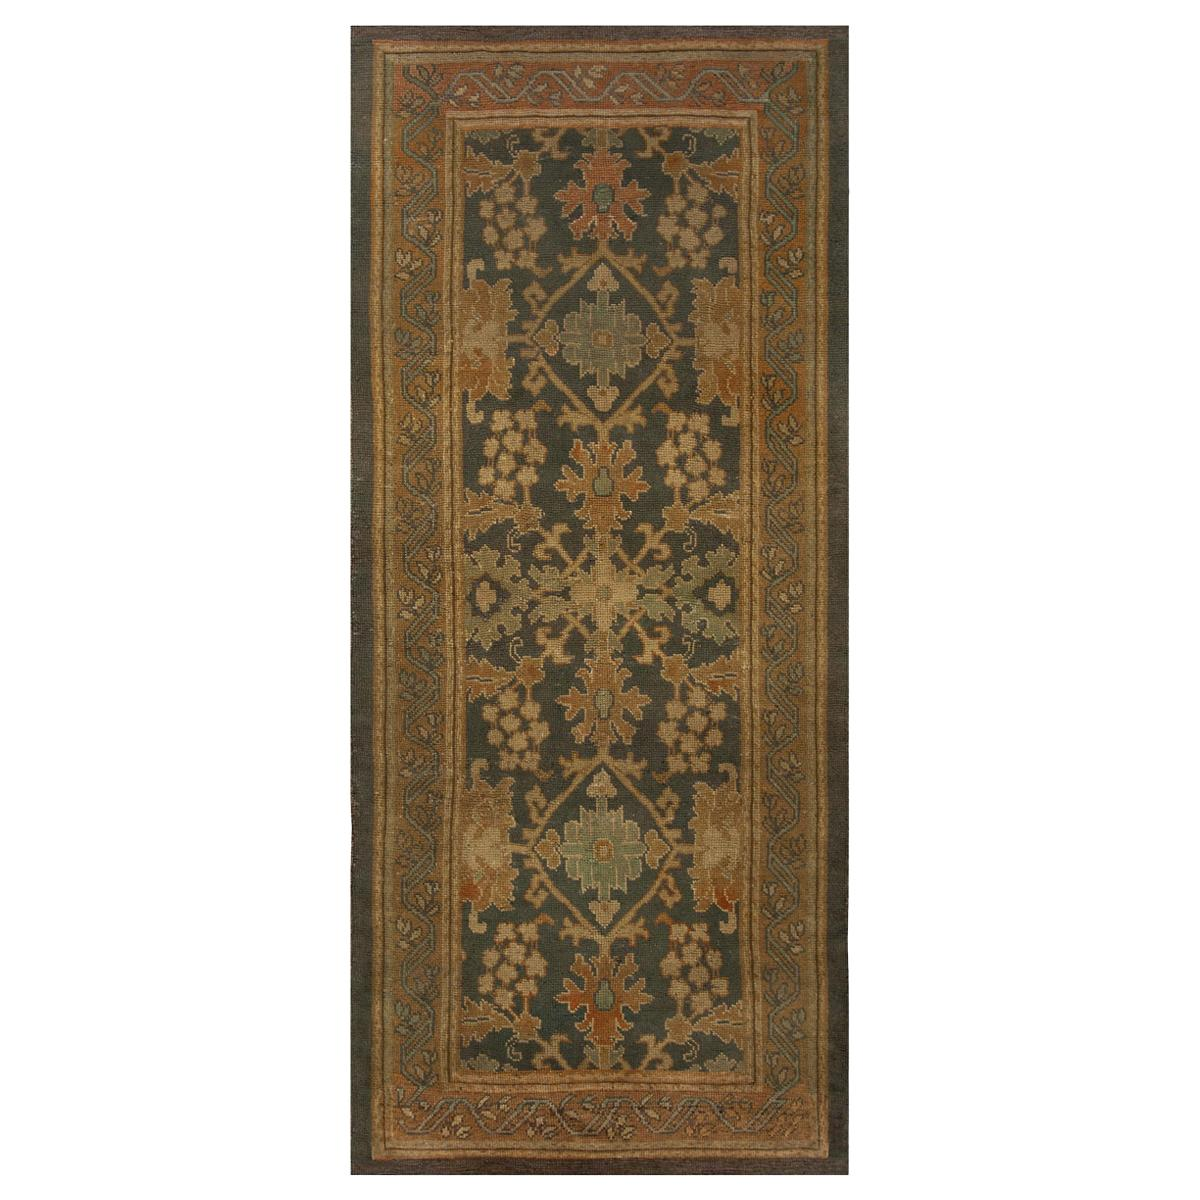 Antique Irish Donegal Runner Rug